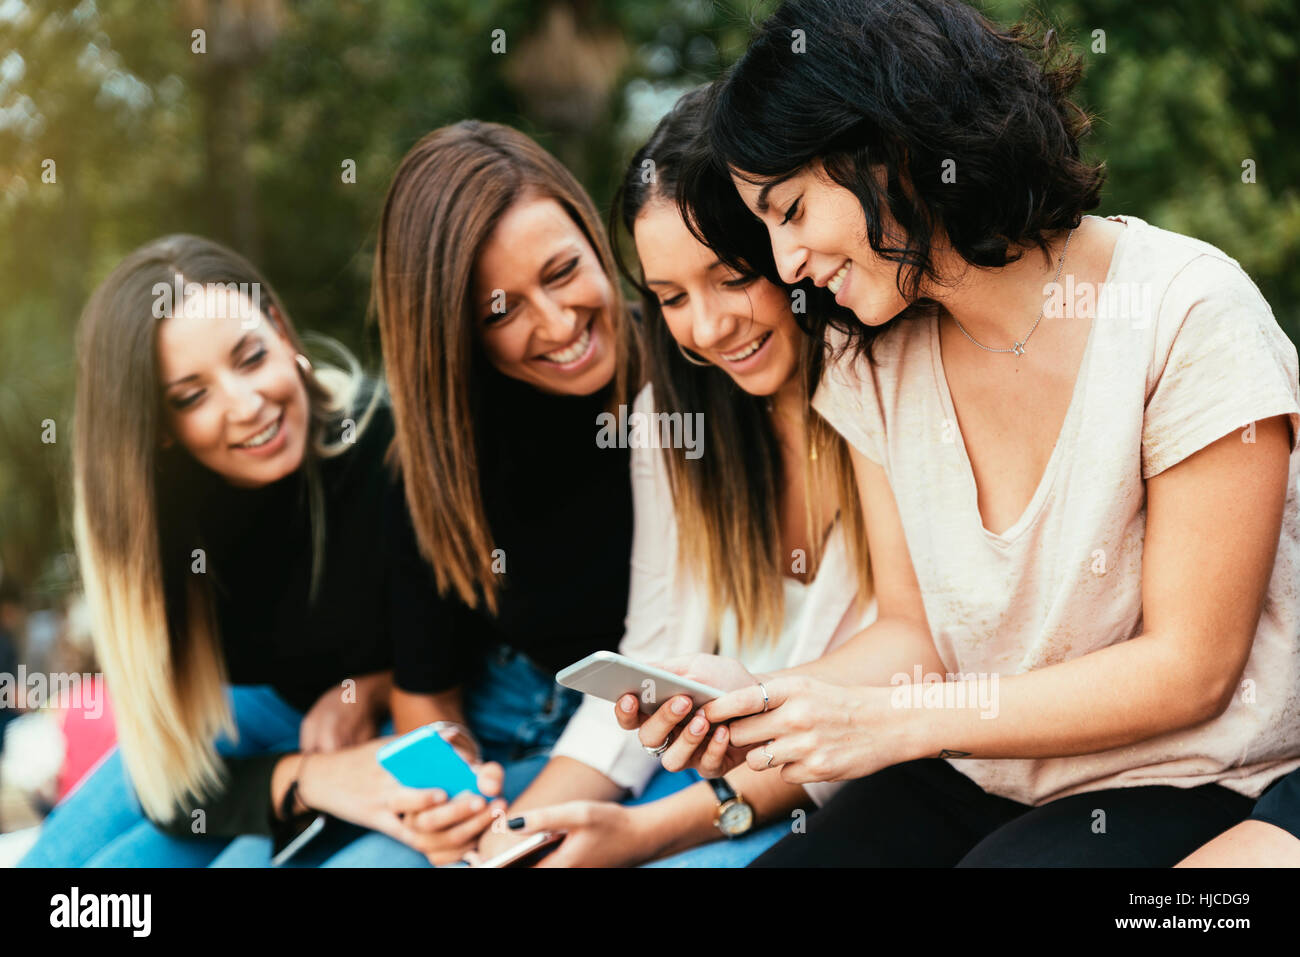 Big Group of friends using cellphones in the street. Stock Photo